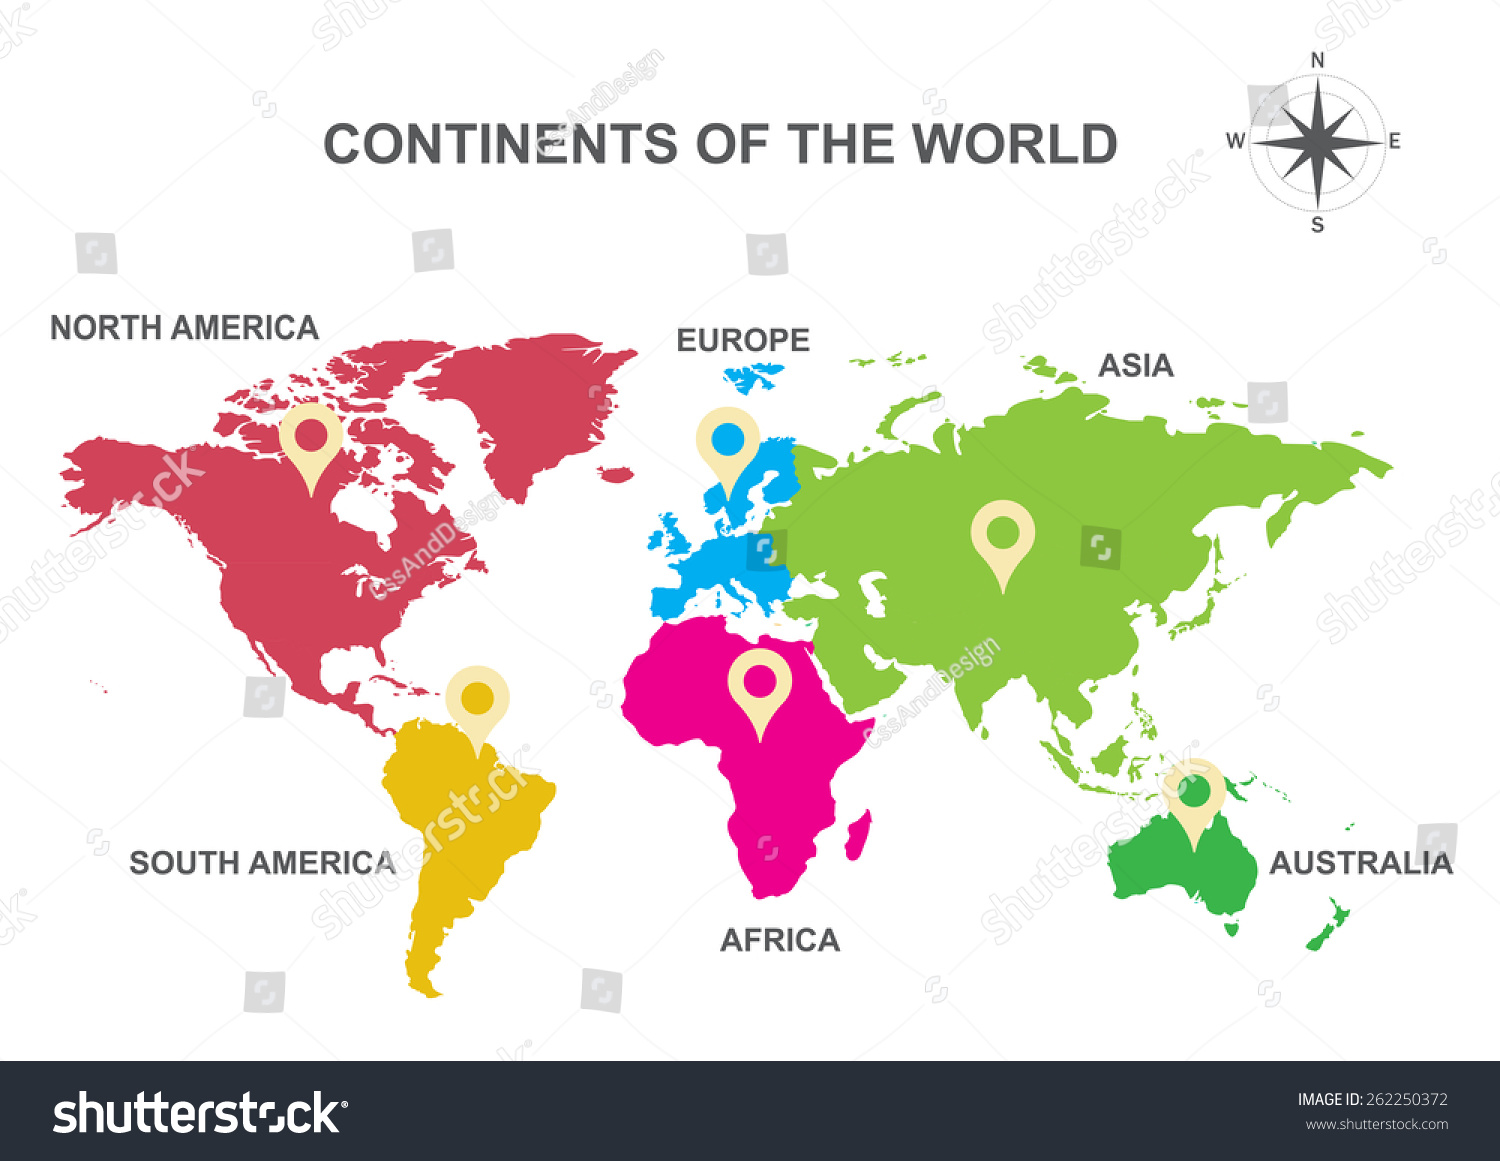 Continents world continents asia europe australia vectores en stock continents of the world continents asia europe australia south america gumiabroncs Images